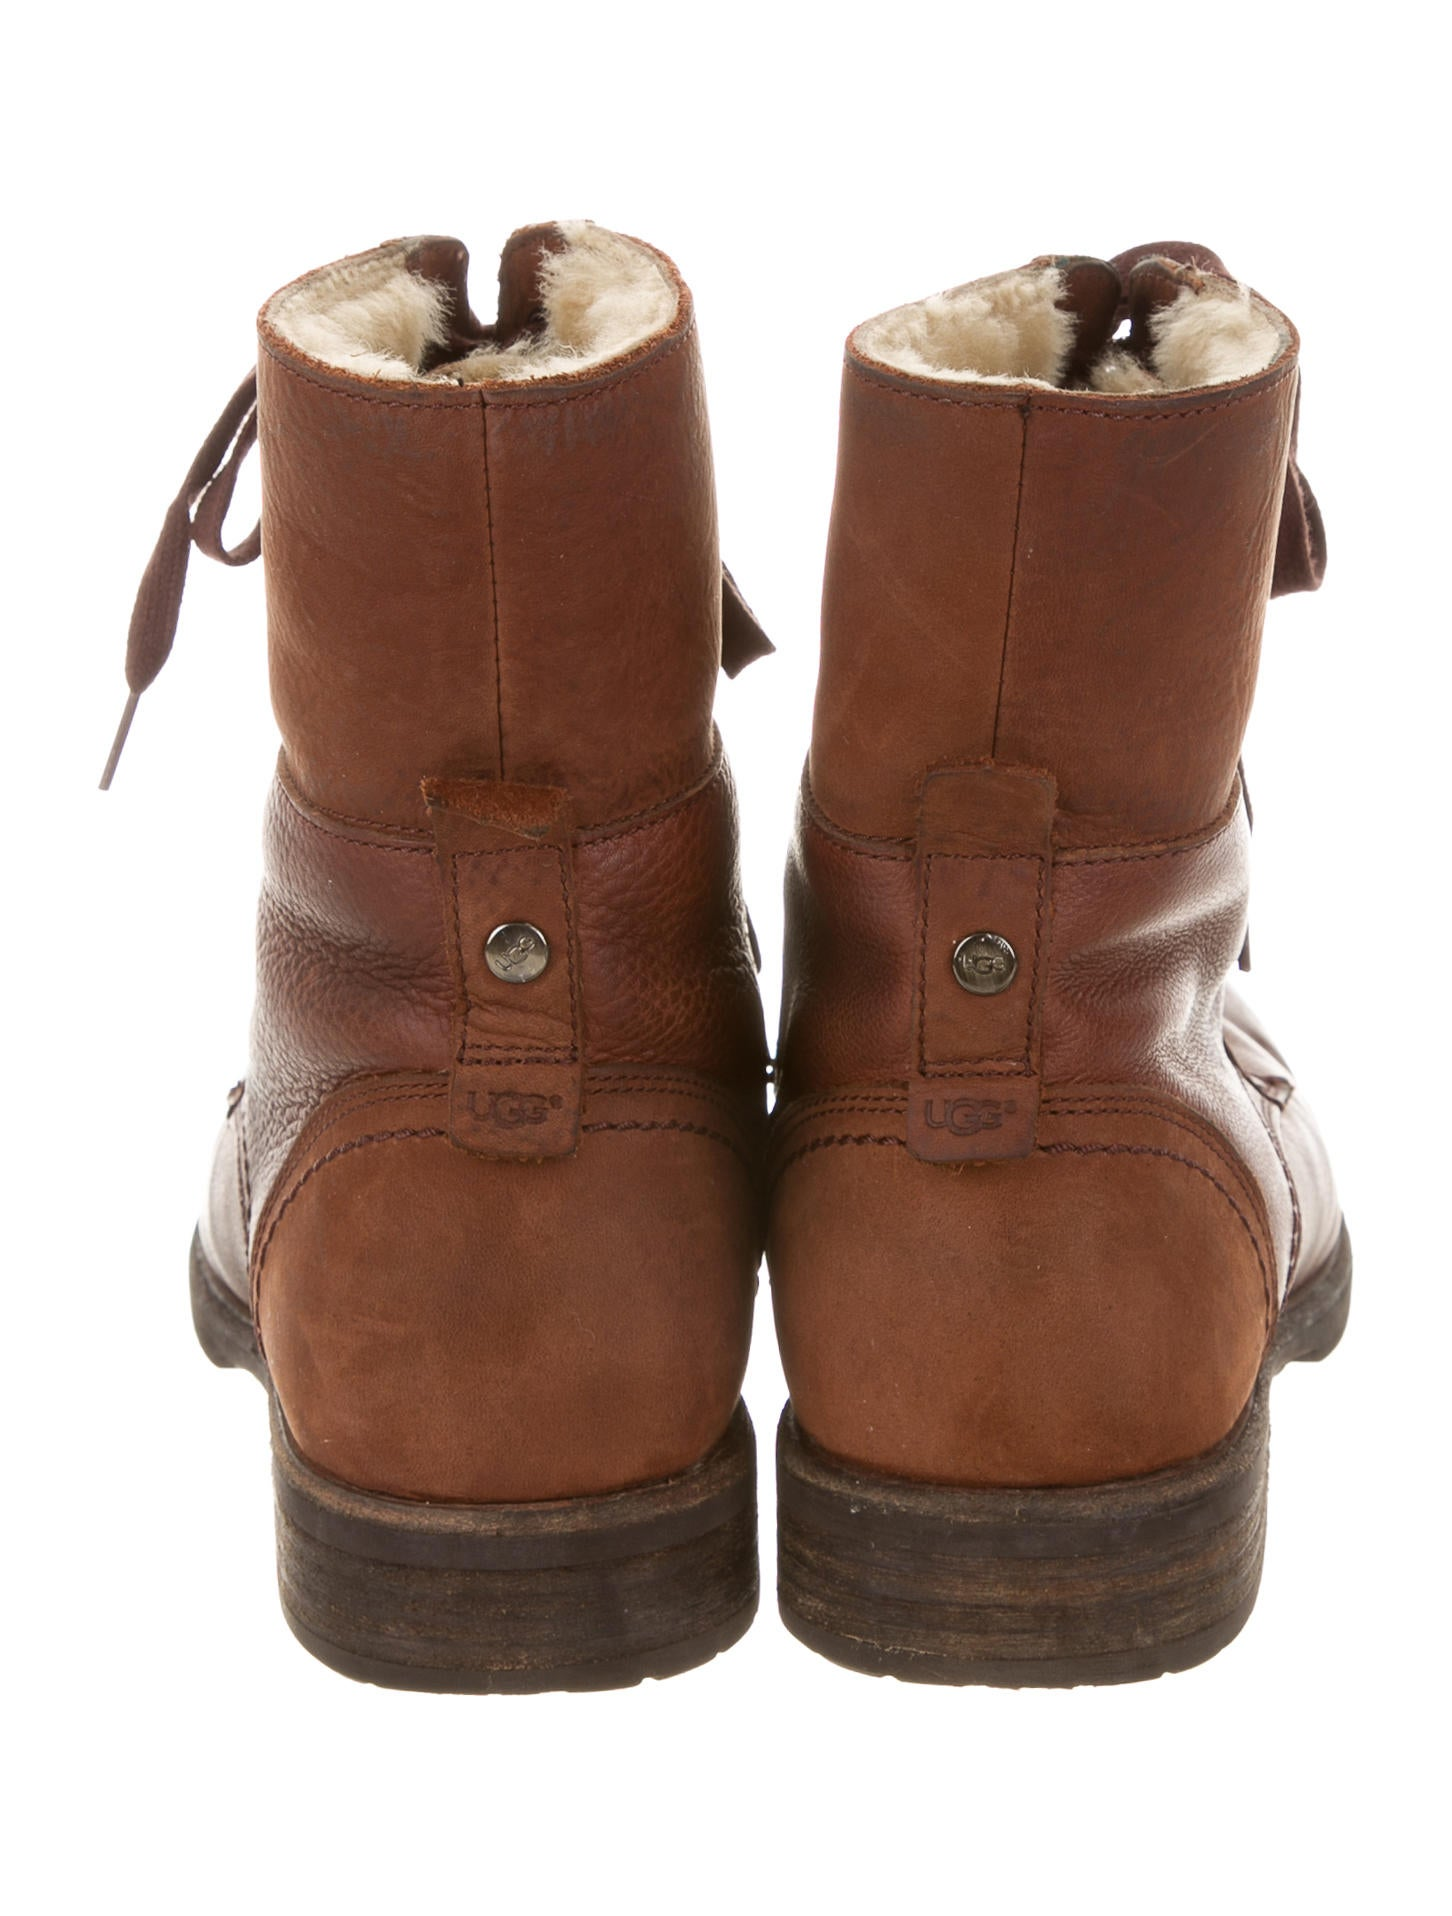 ugg australia leather shearling boots shoes wuugg21331